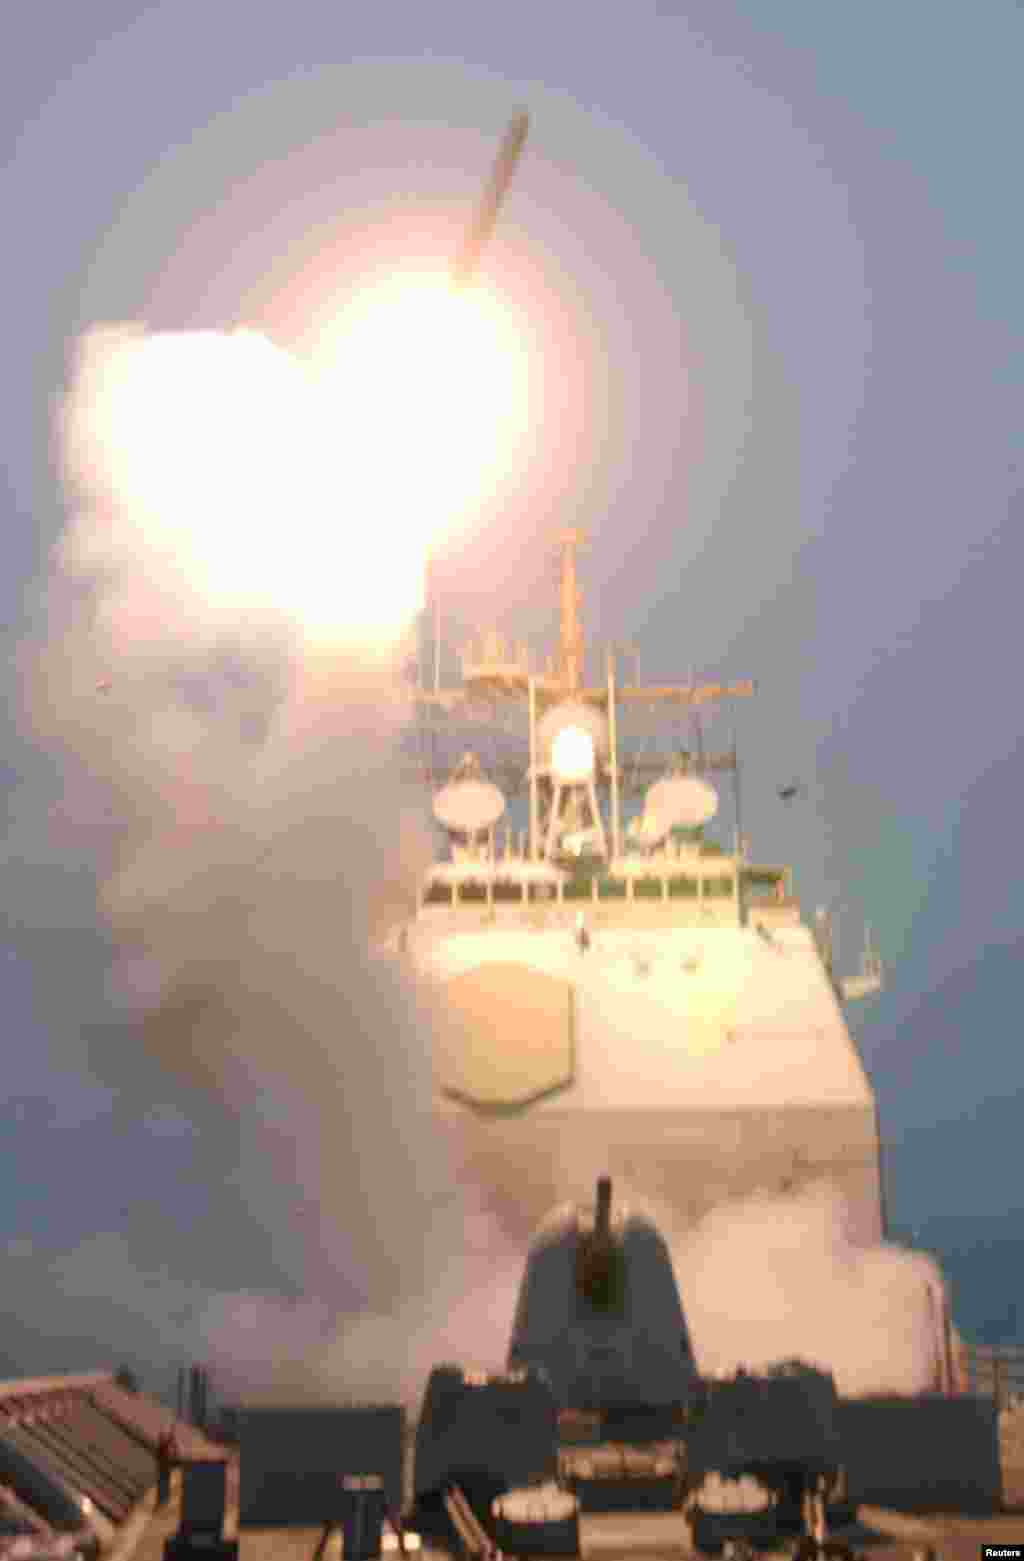 The first Tomahawk missile to be fired into Iraq is launched from the USS Bunker Hill in the Persian Gulf early on March 20, 2003.